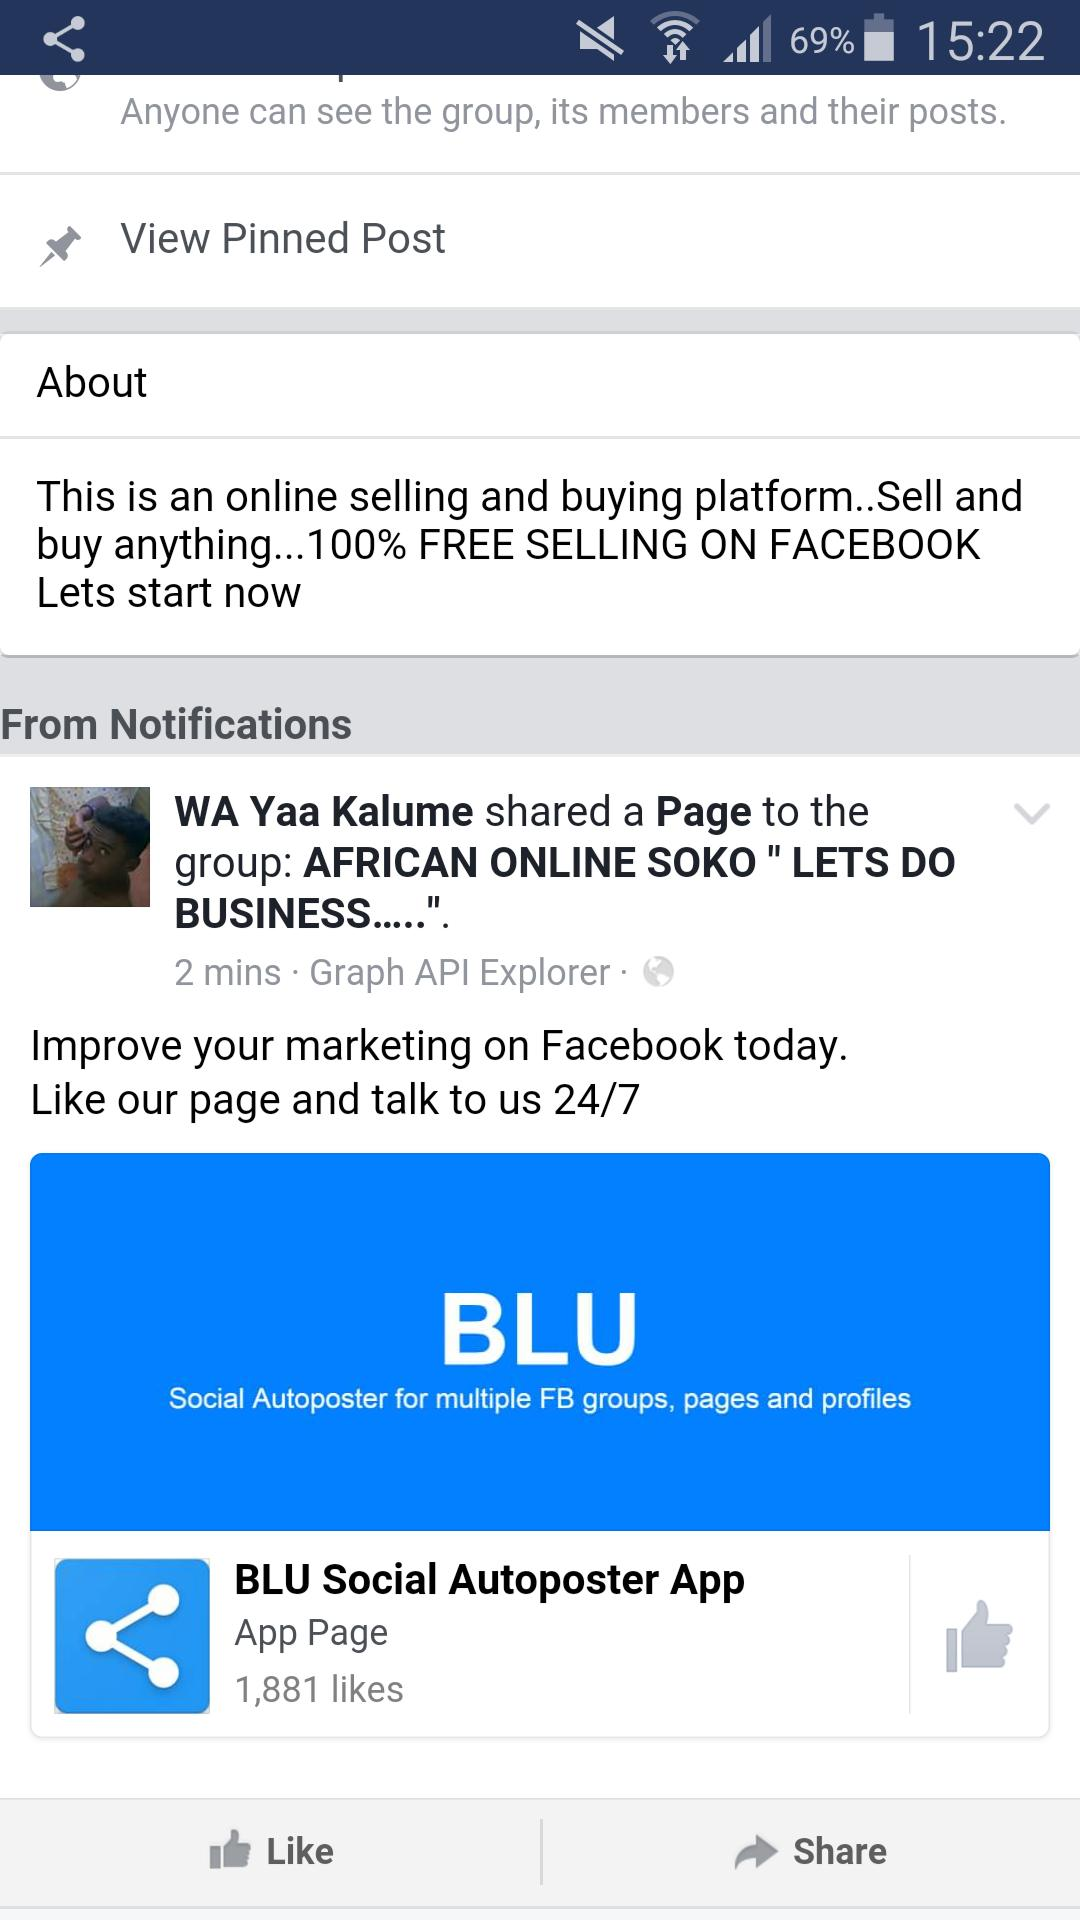 BLU Groups & Pages Auto Poster for Android - APK Download